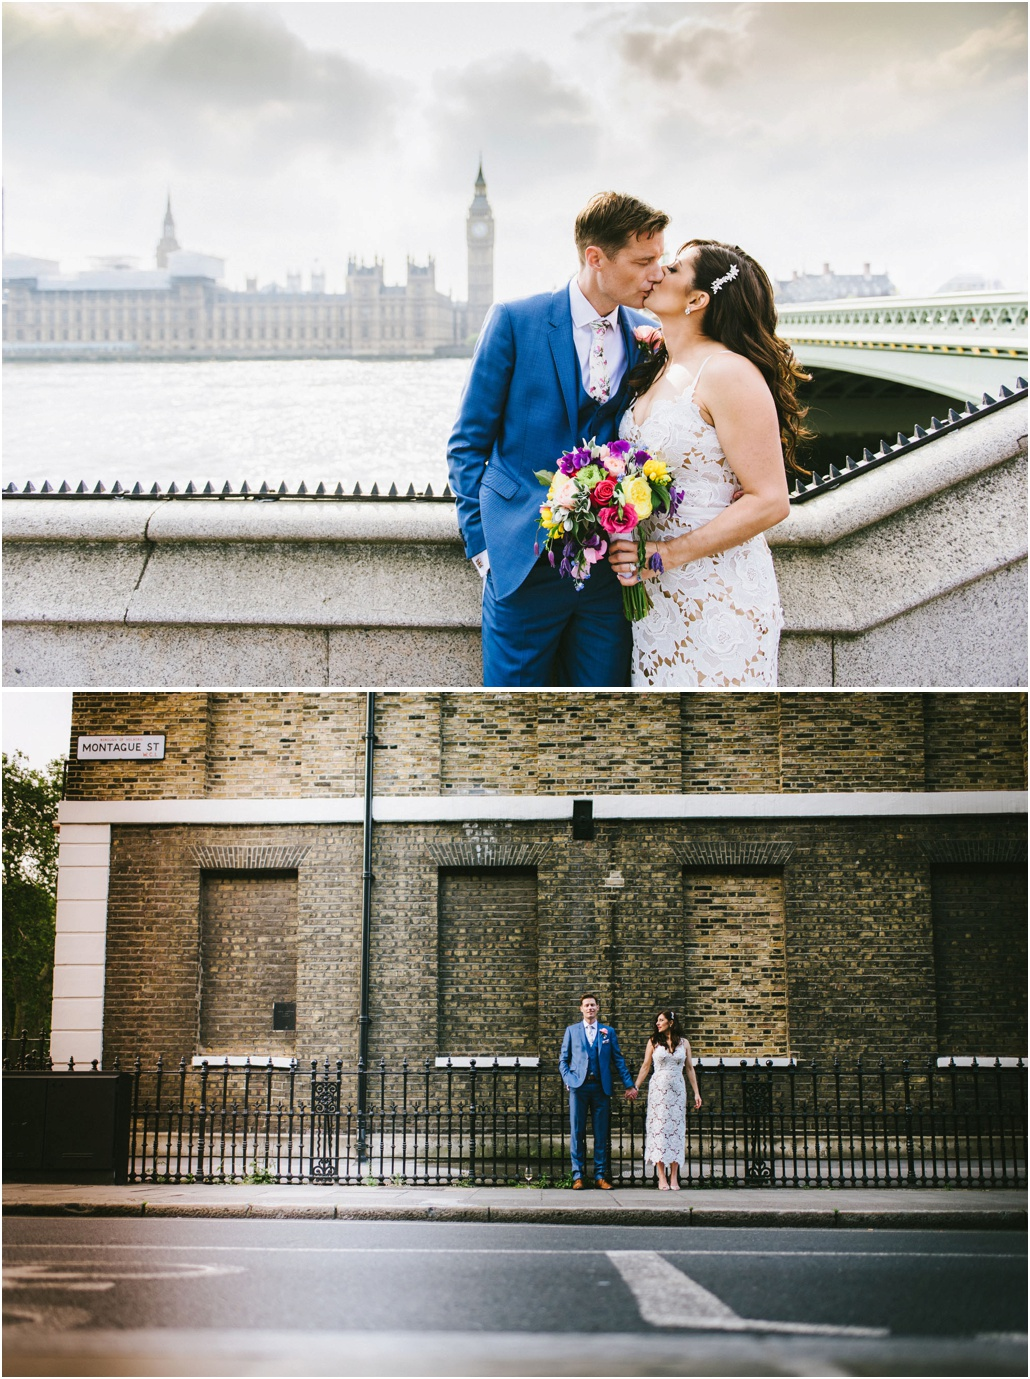 London Bridge wedding